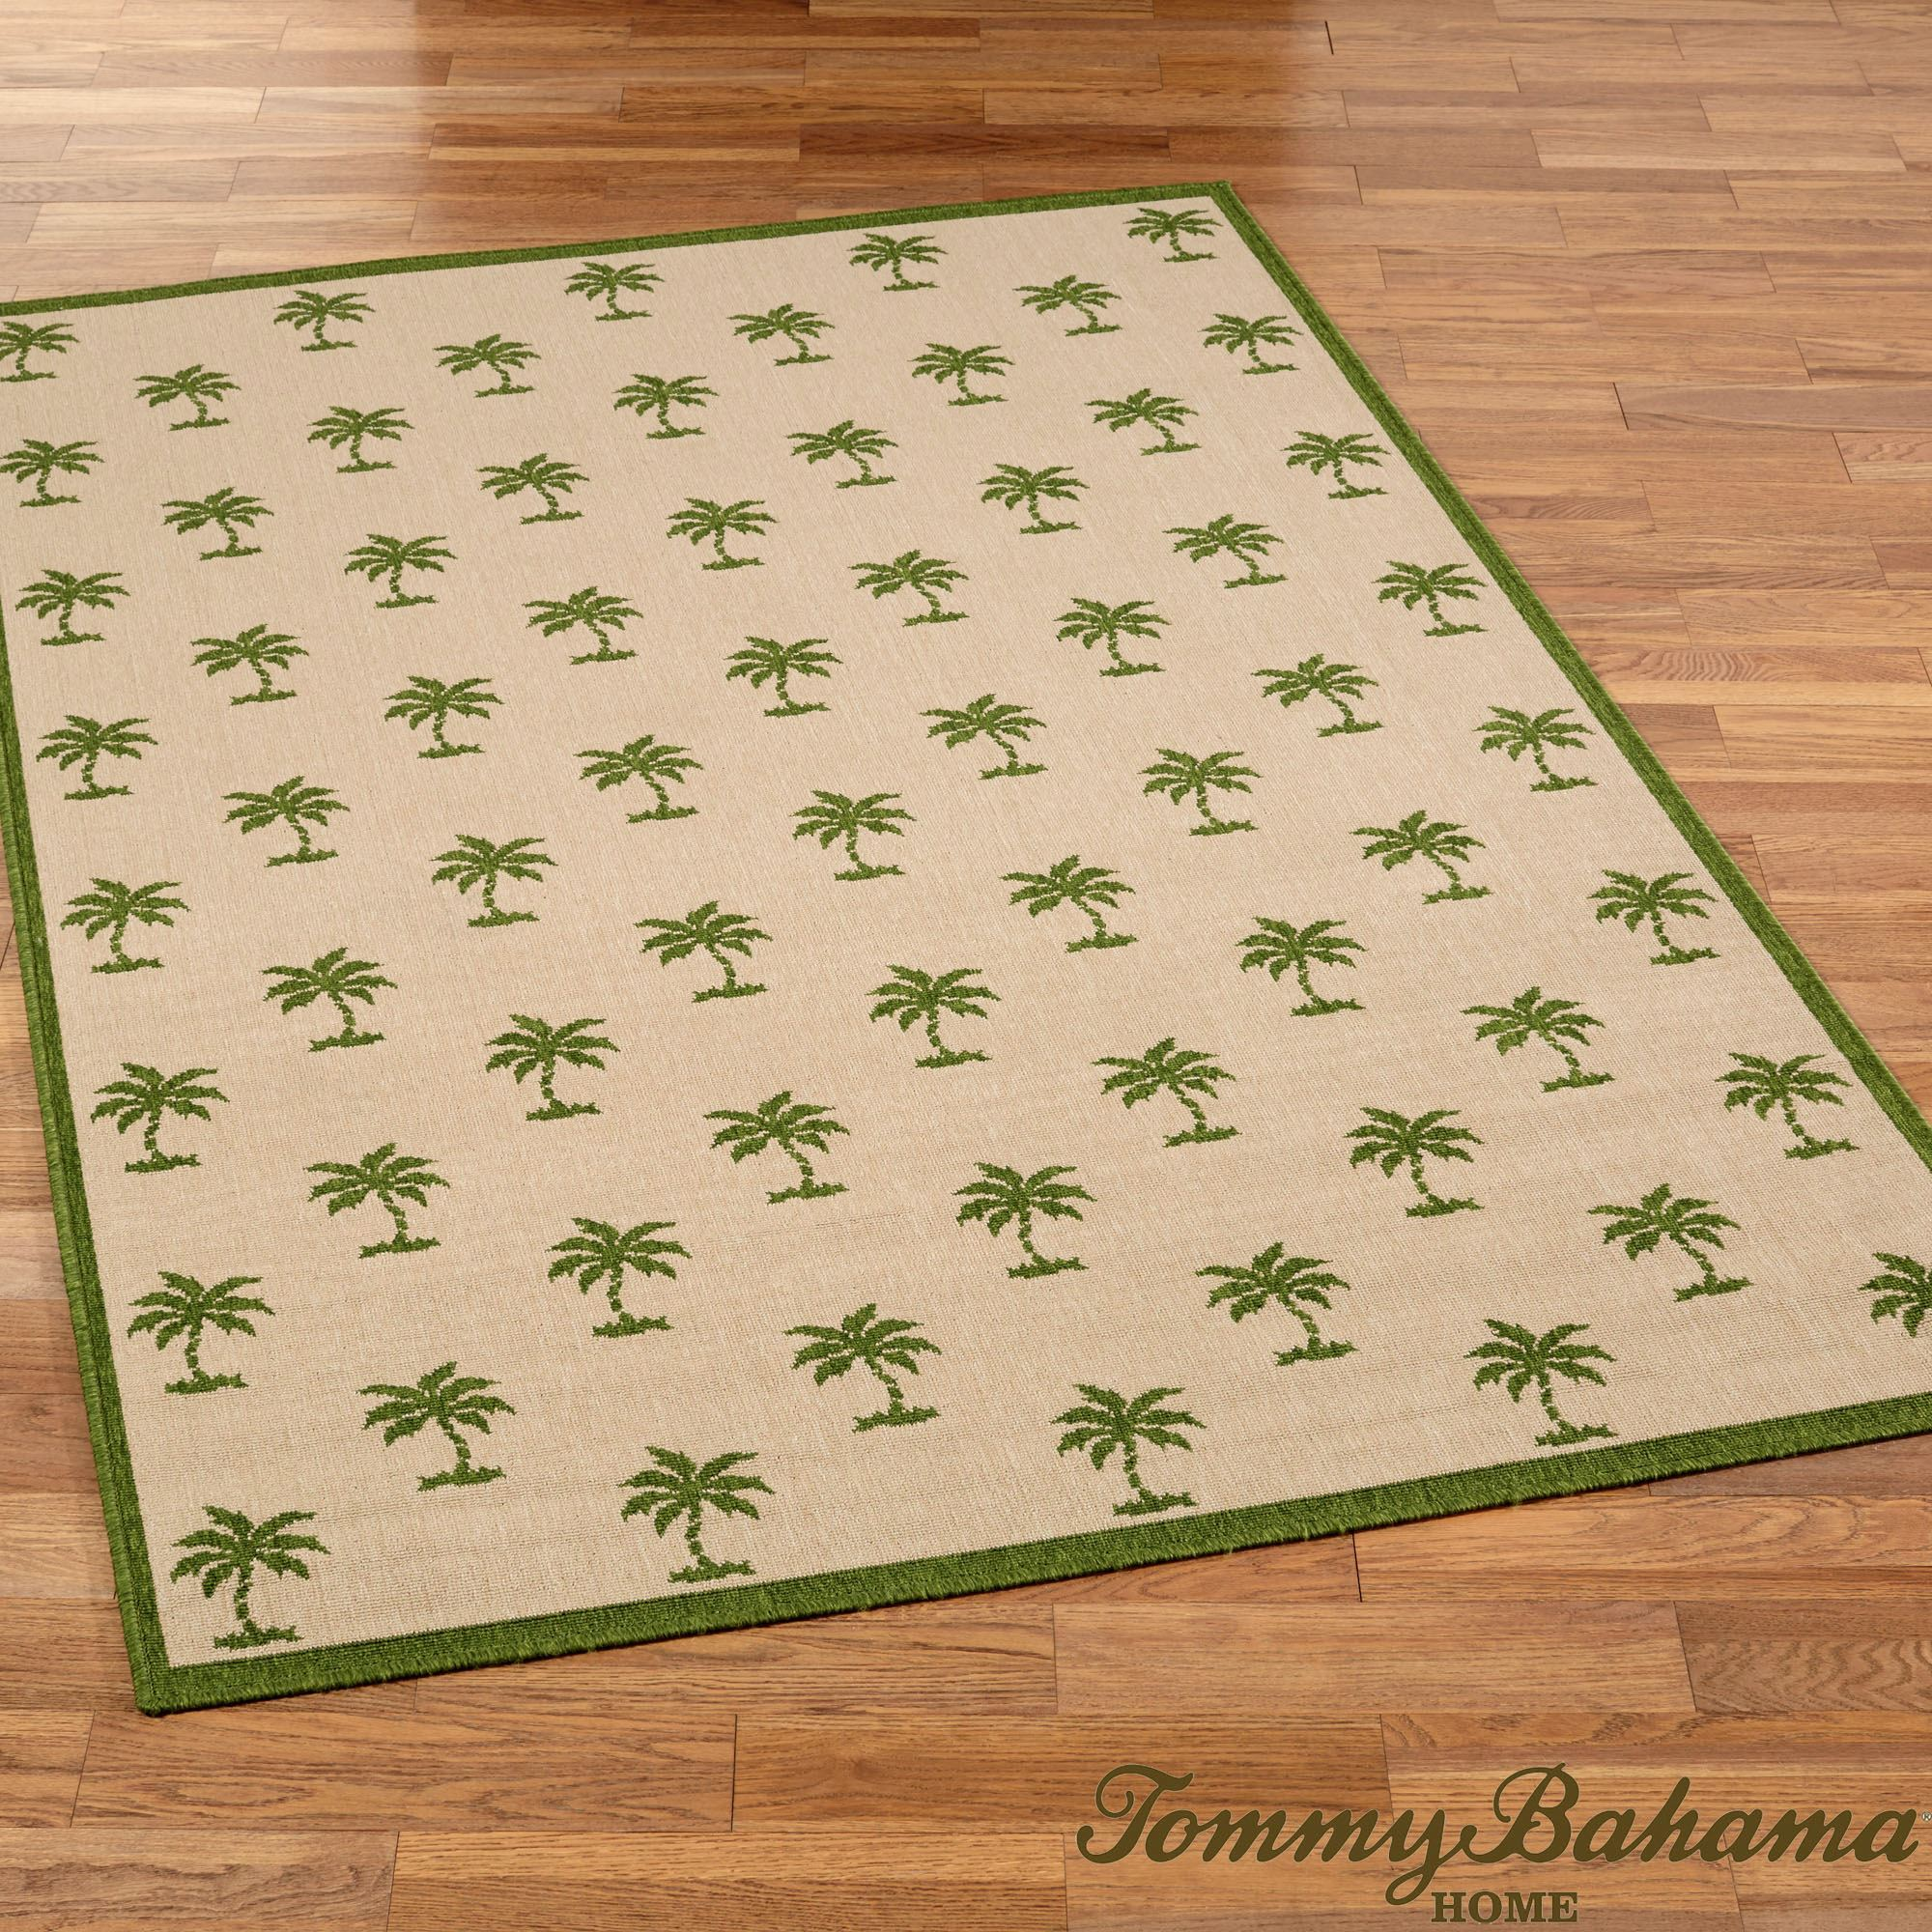 Groovy Palms Indoor Outdoor Tropical Rugs By Tommy Bahama